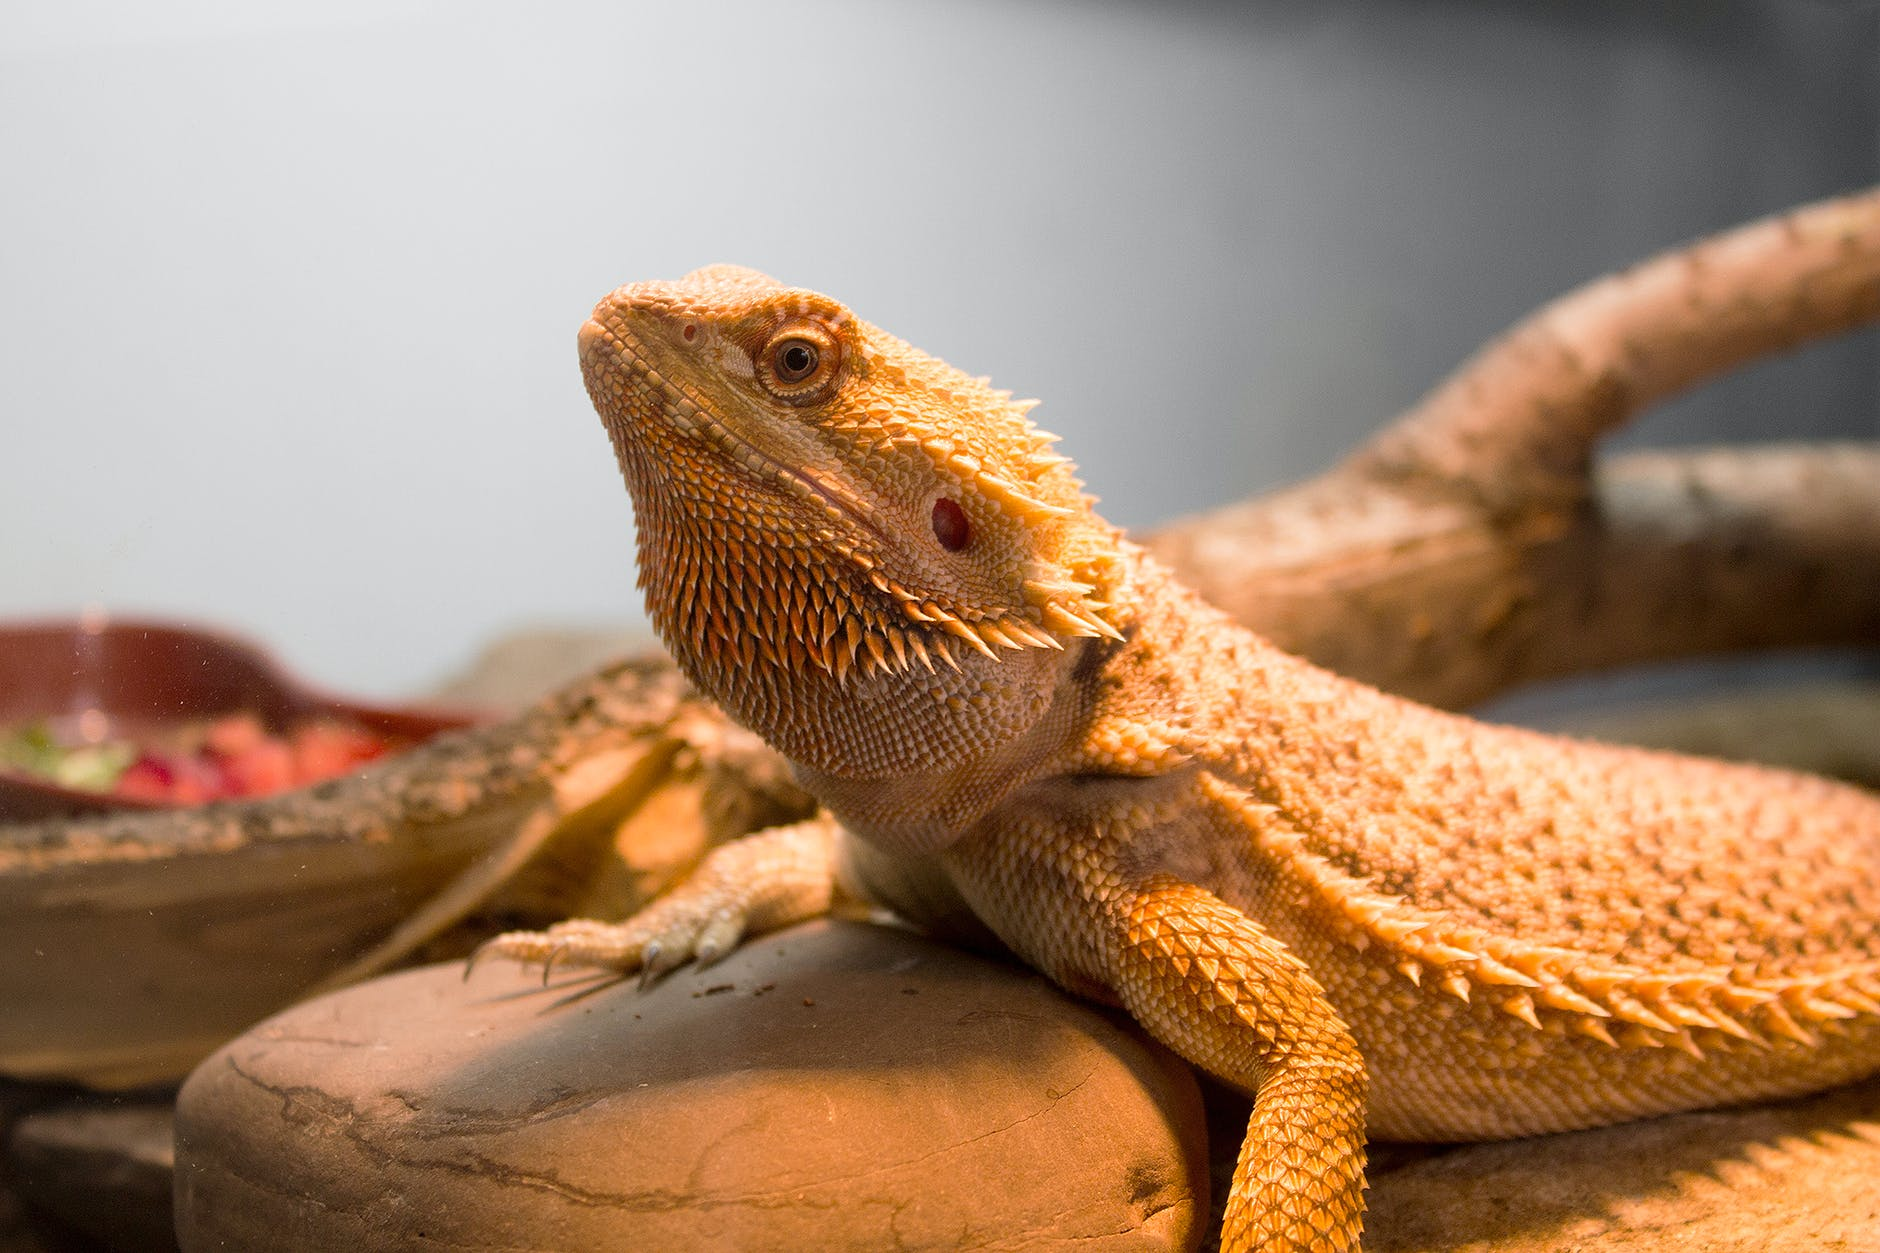 bearded lizard pictures - 1024×512